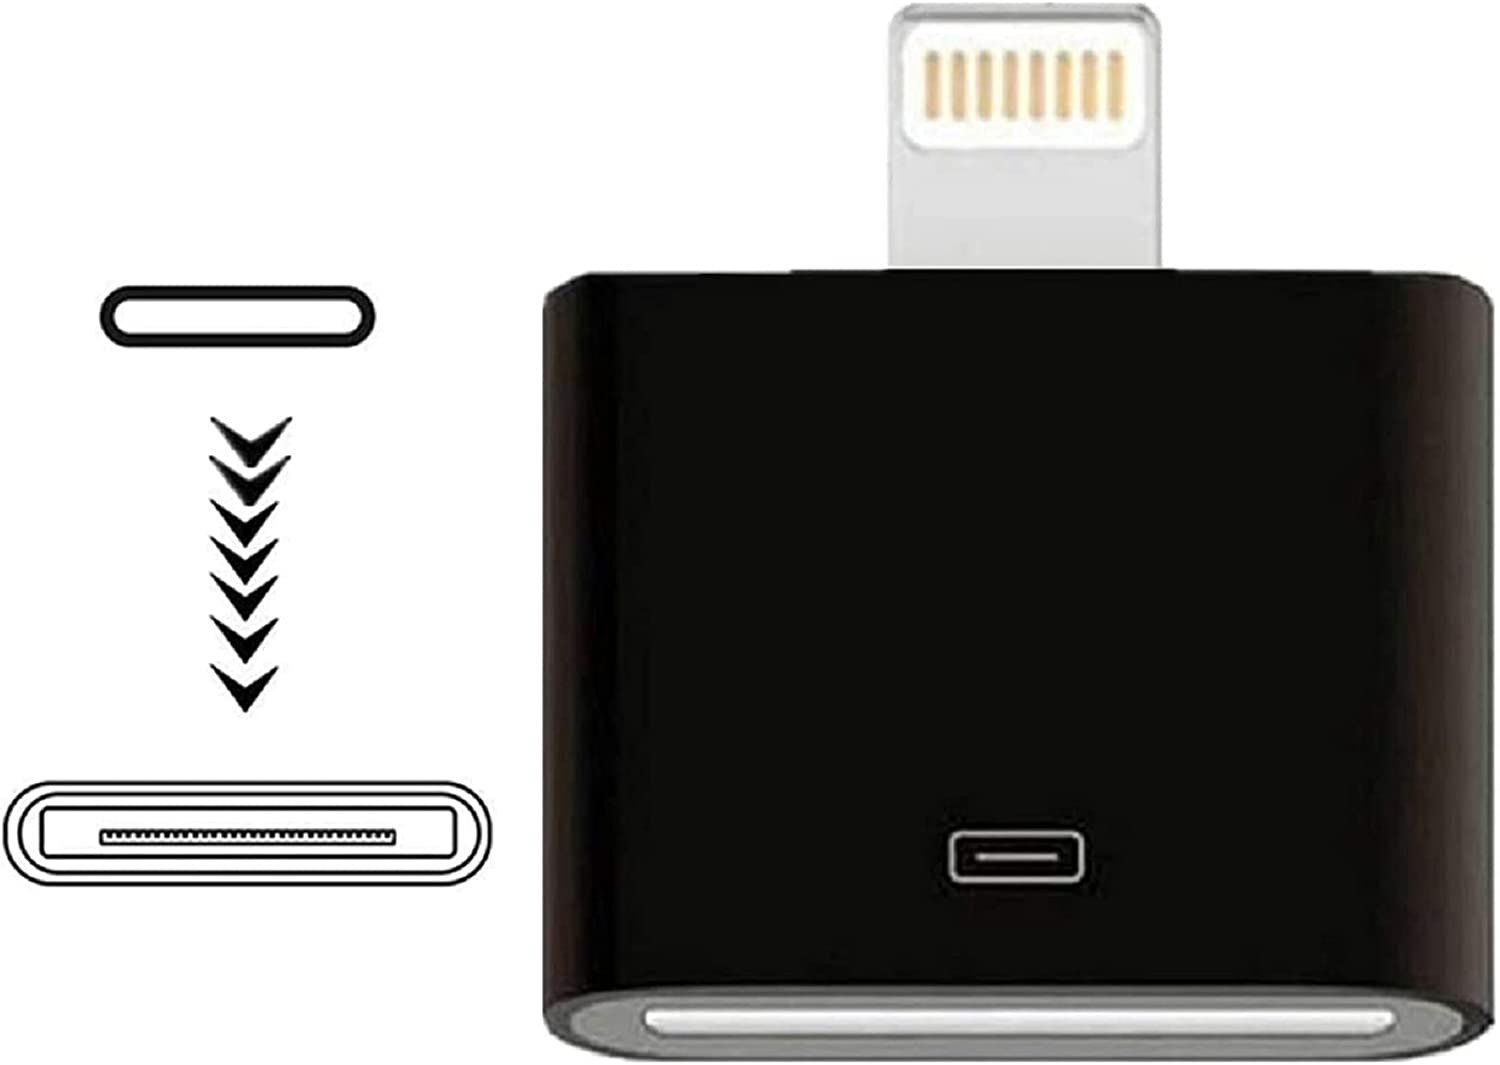 Giom Lightning to 30 Pin Adapter,MFi Certified Male to 30 Pin Female Connector Converter with iPhone Lightning Charger Cable Cord Compatible iPhone 12 11 X 8 7 6P 5S 4S 4 3 3G/iPad/iPod (Black)